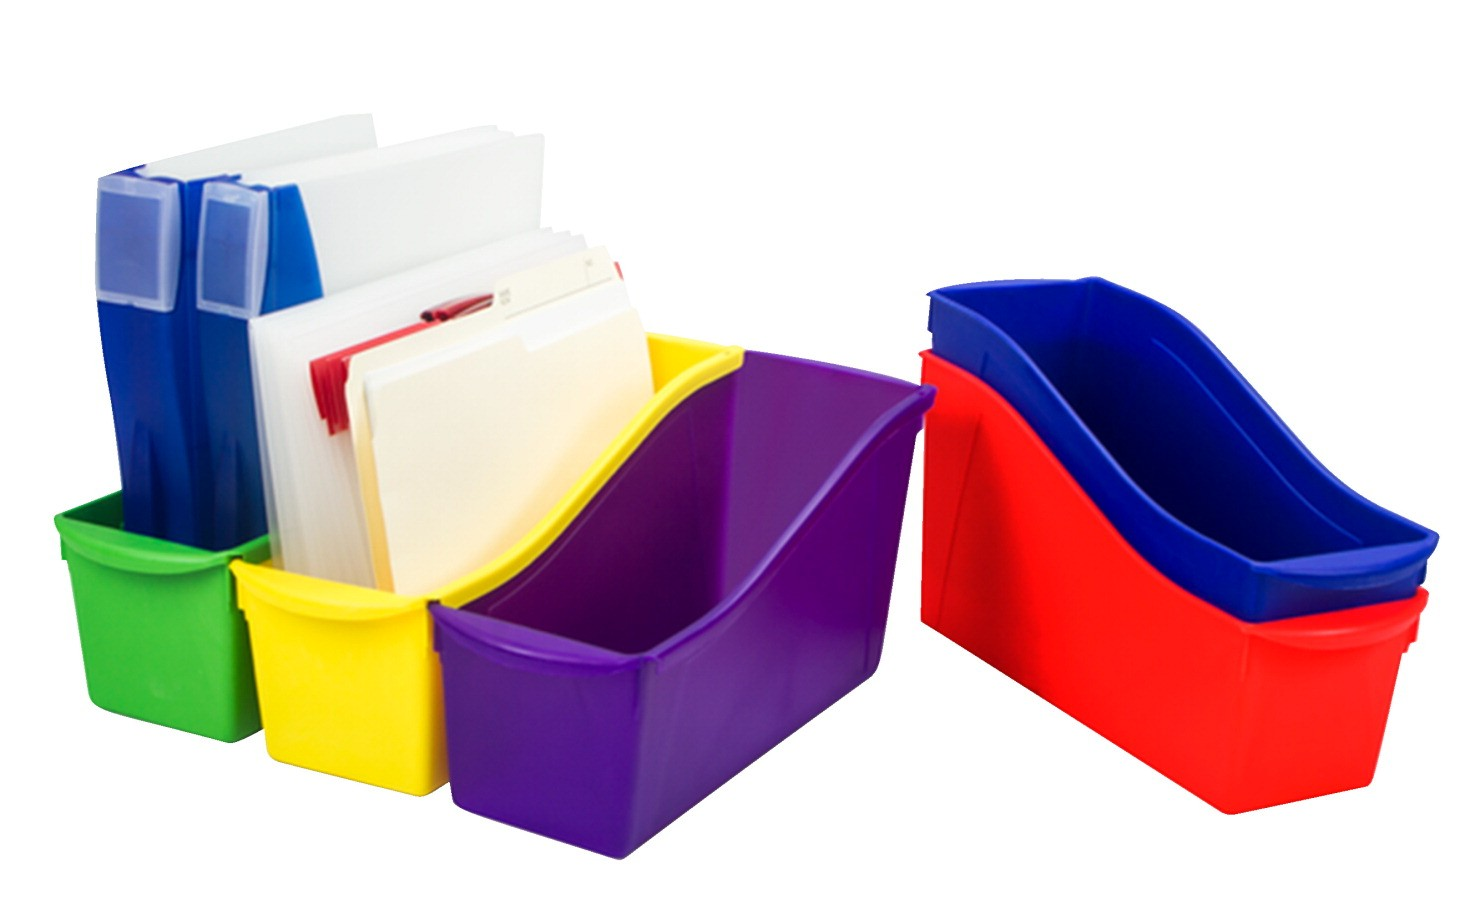 Storex Interlocking Book Bins, Assorted Colors, 5/Set